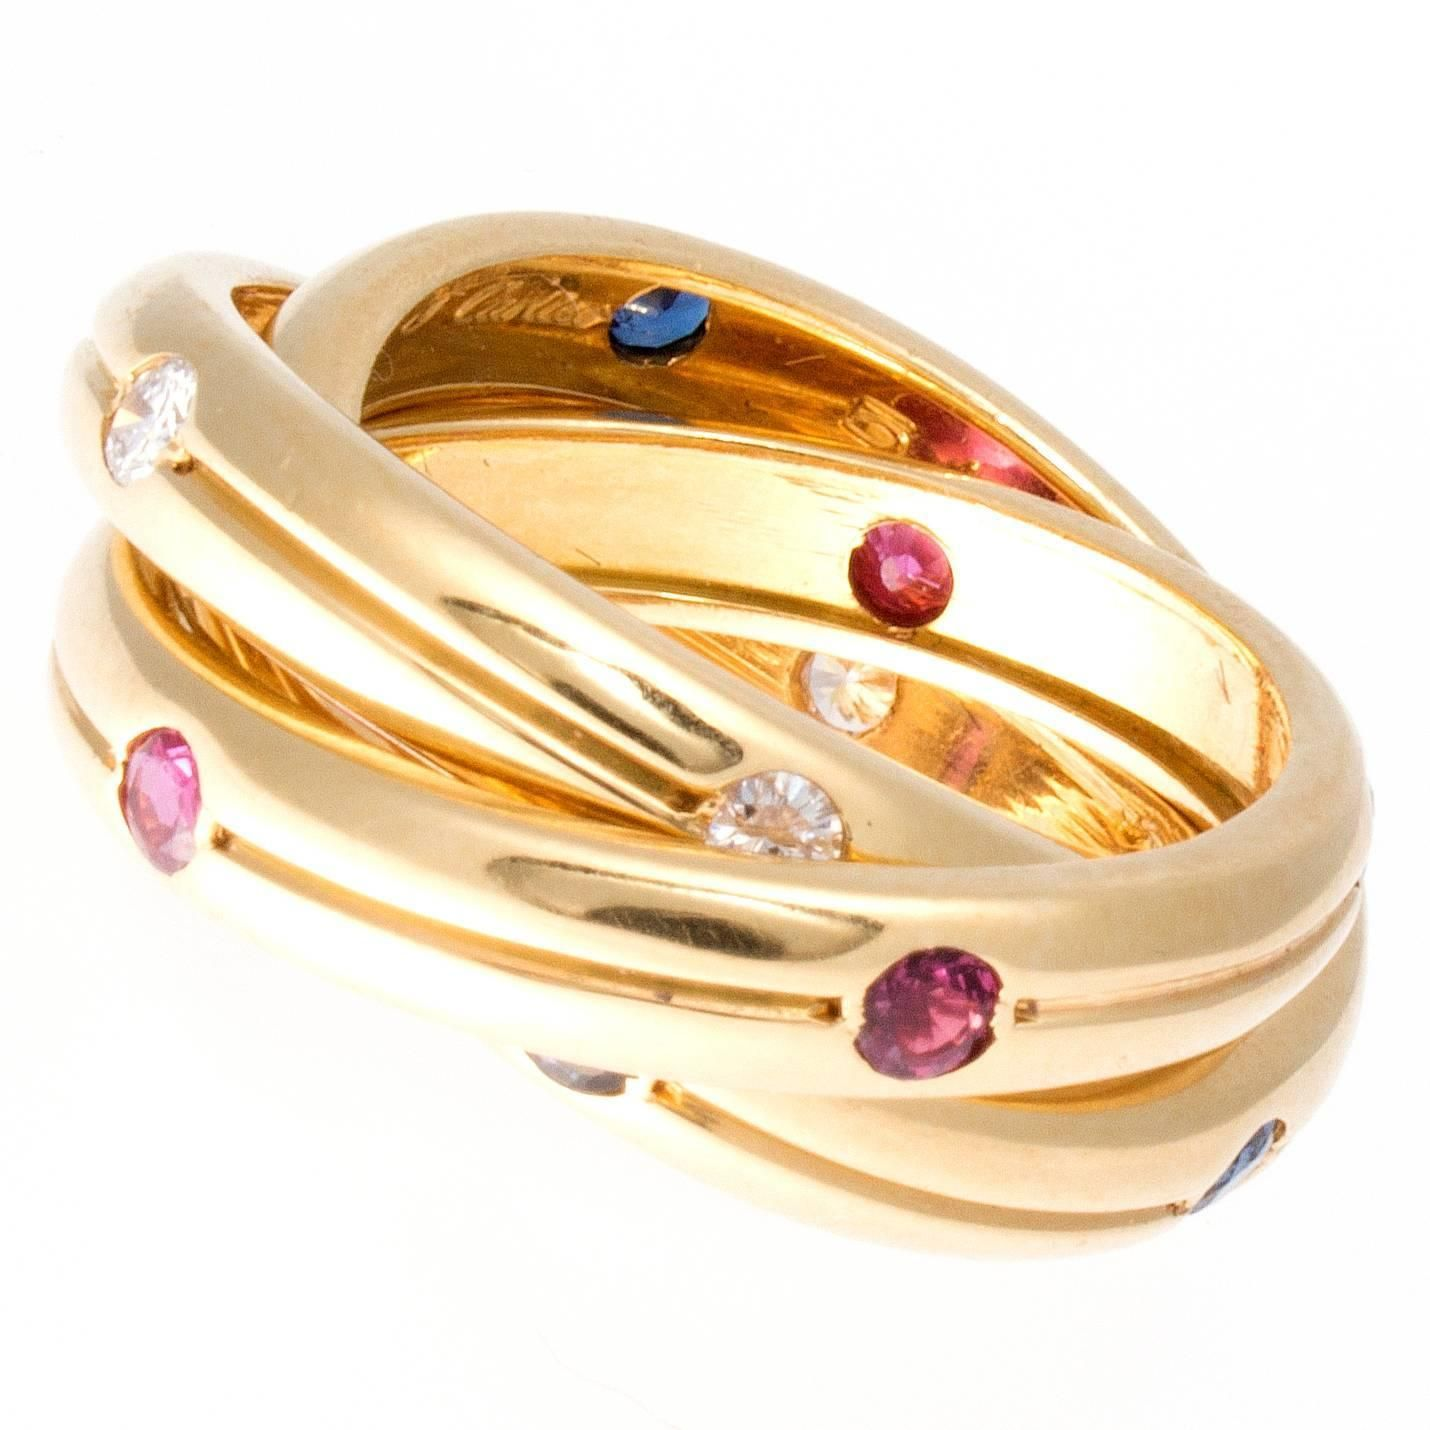 Cartier Trinity Ruby Sapphire Diamond Gold Ring | From a unique collection of vintage more rings at https://www.1stdibs.com/jewelry/rings/more-rings/